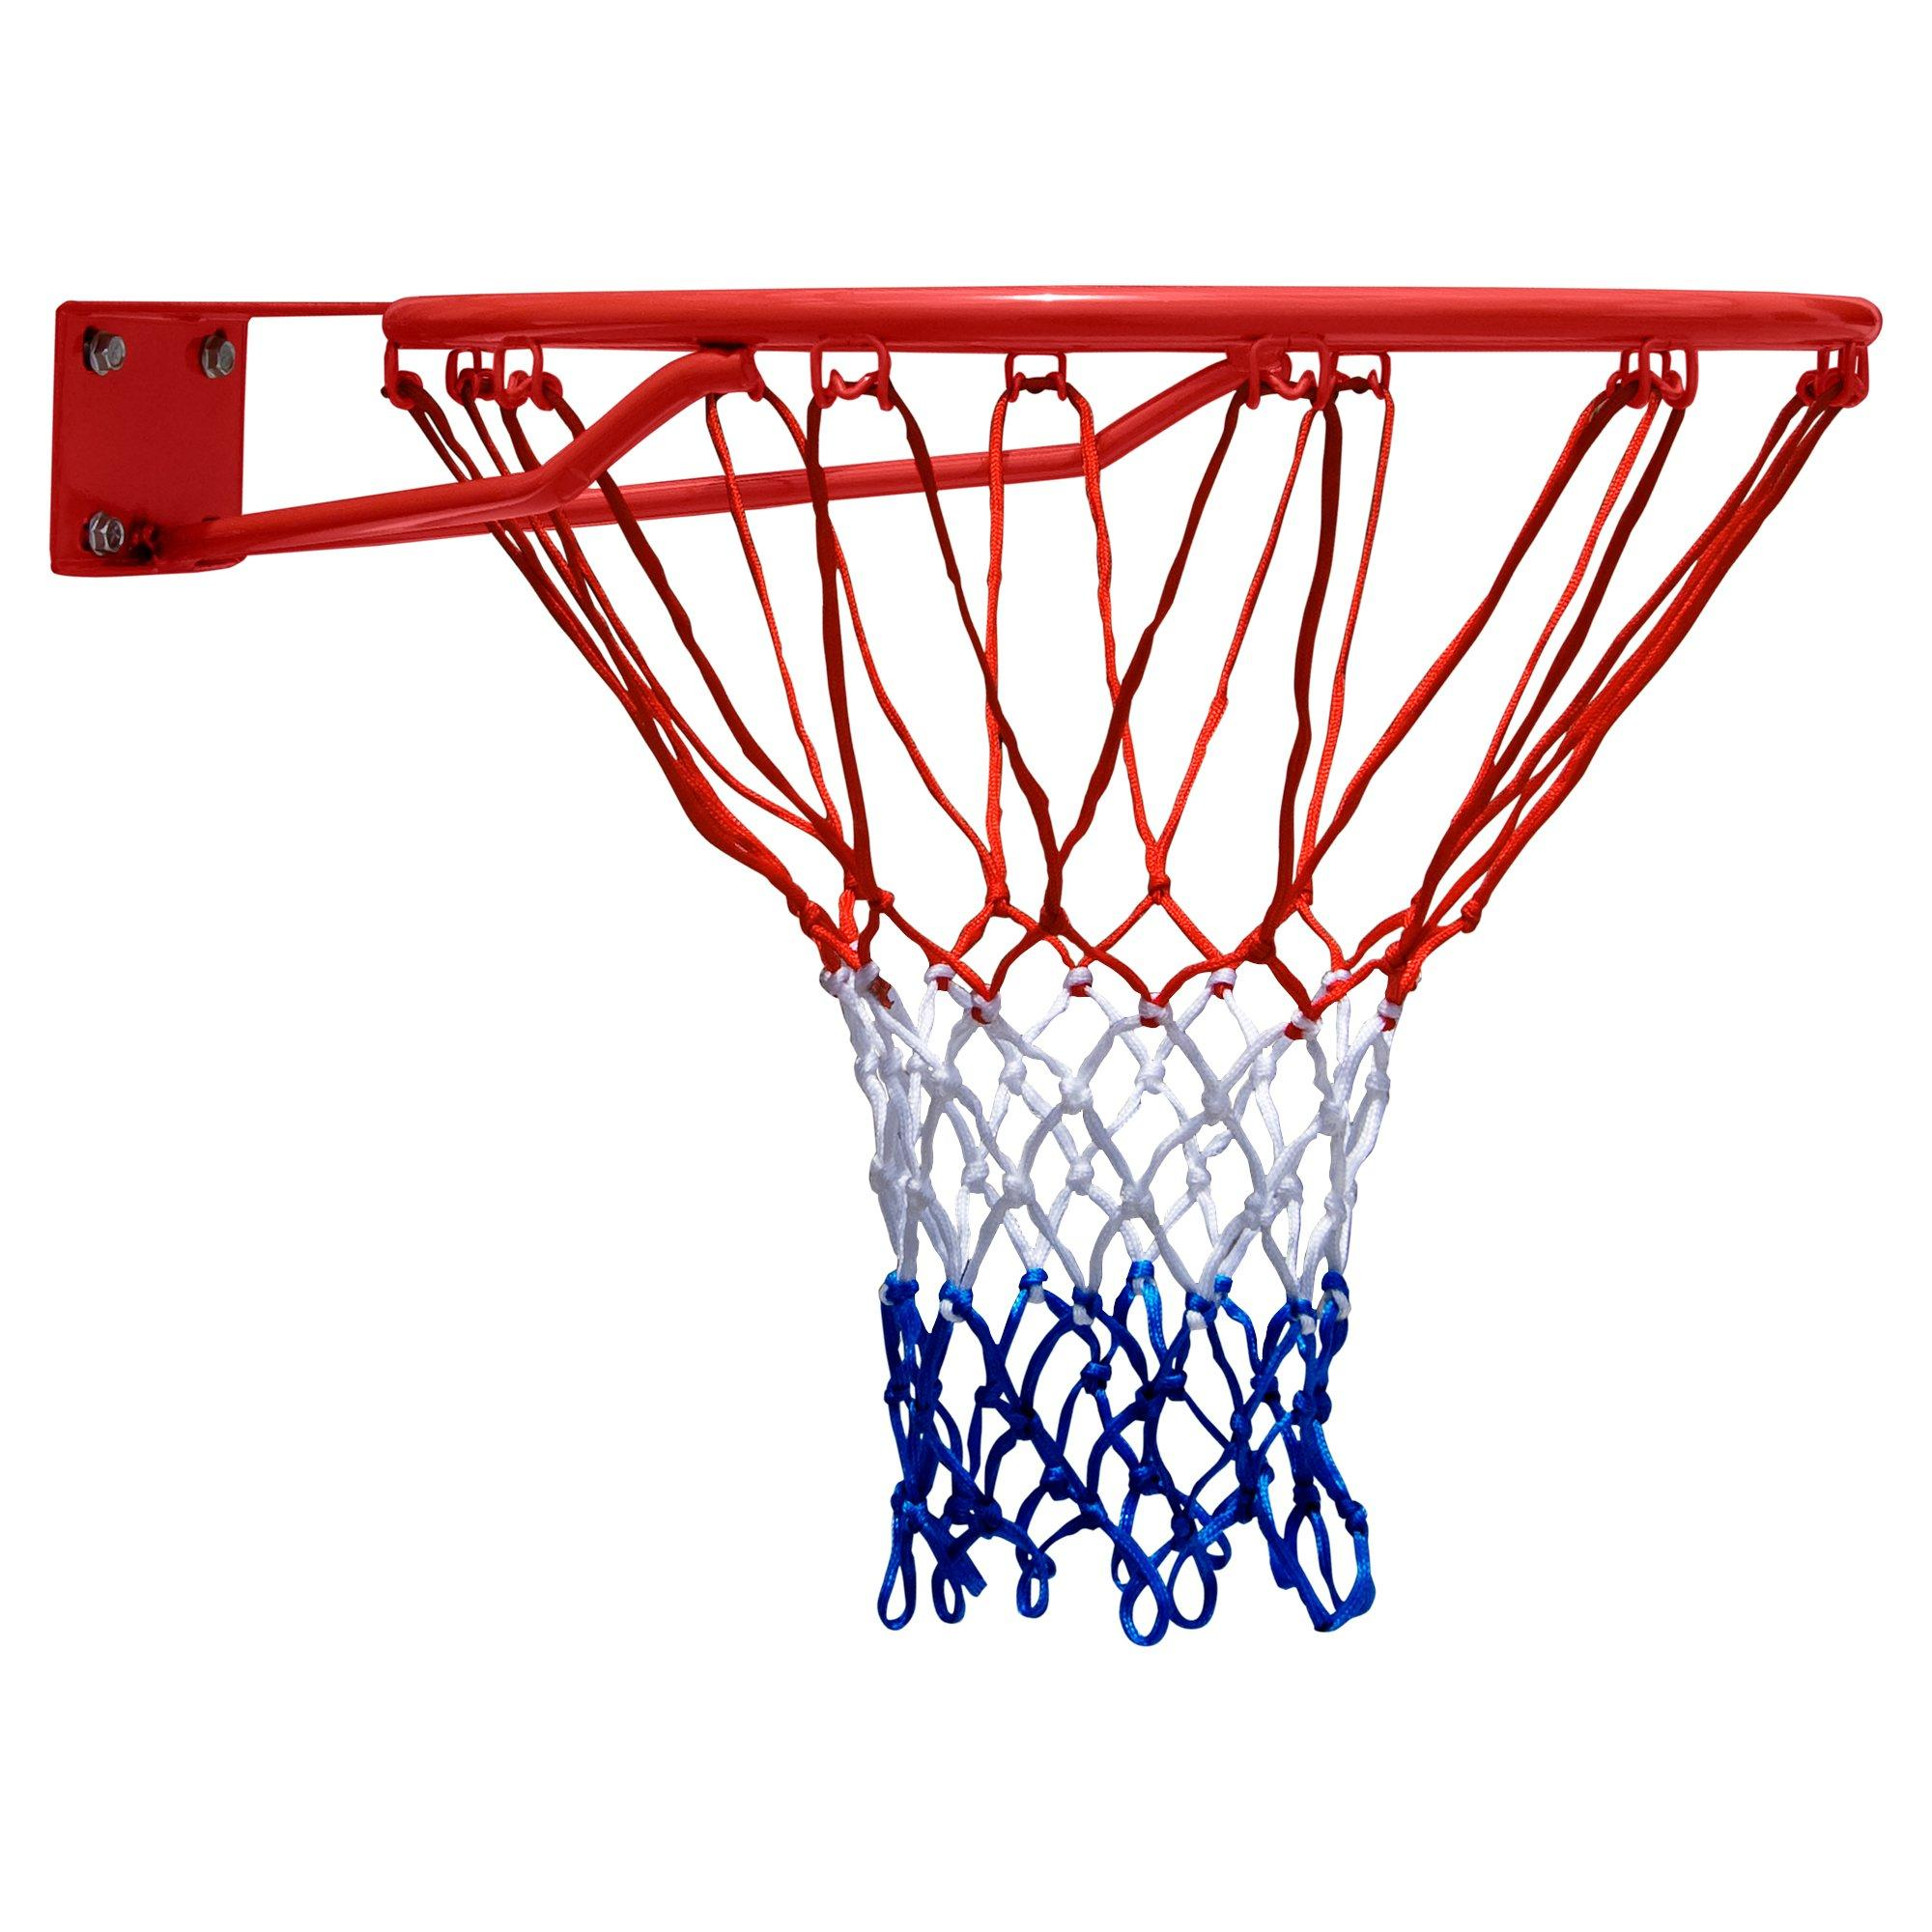 basic basketball rim hibbett us rh hibbett com NBA Basketball Rim Miami Heat Basketball Rim